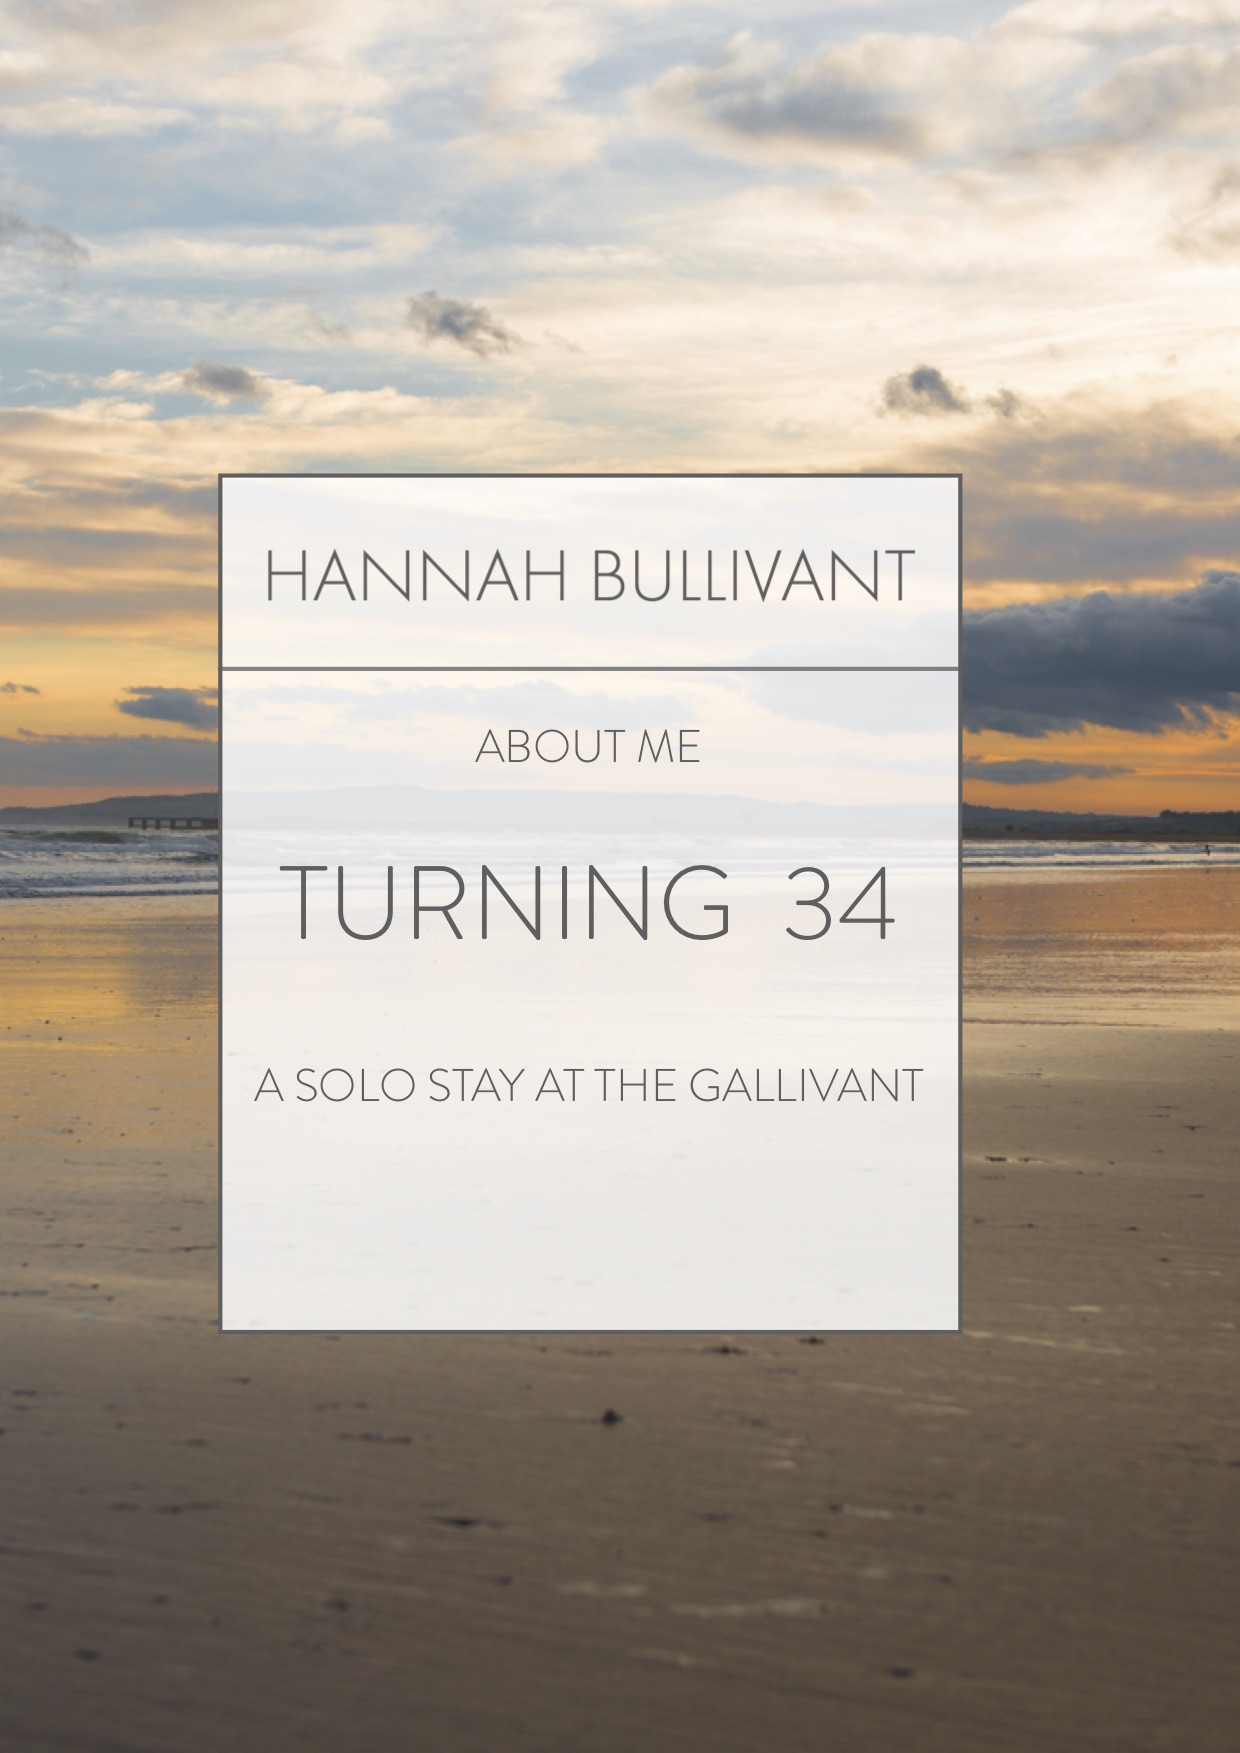 The Gallivant  | Hannahbullivant.com